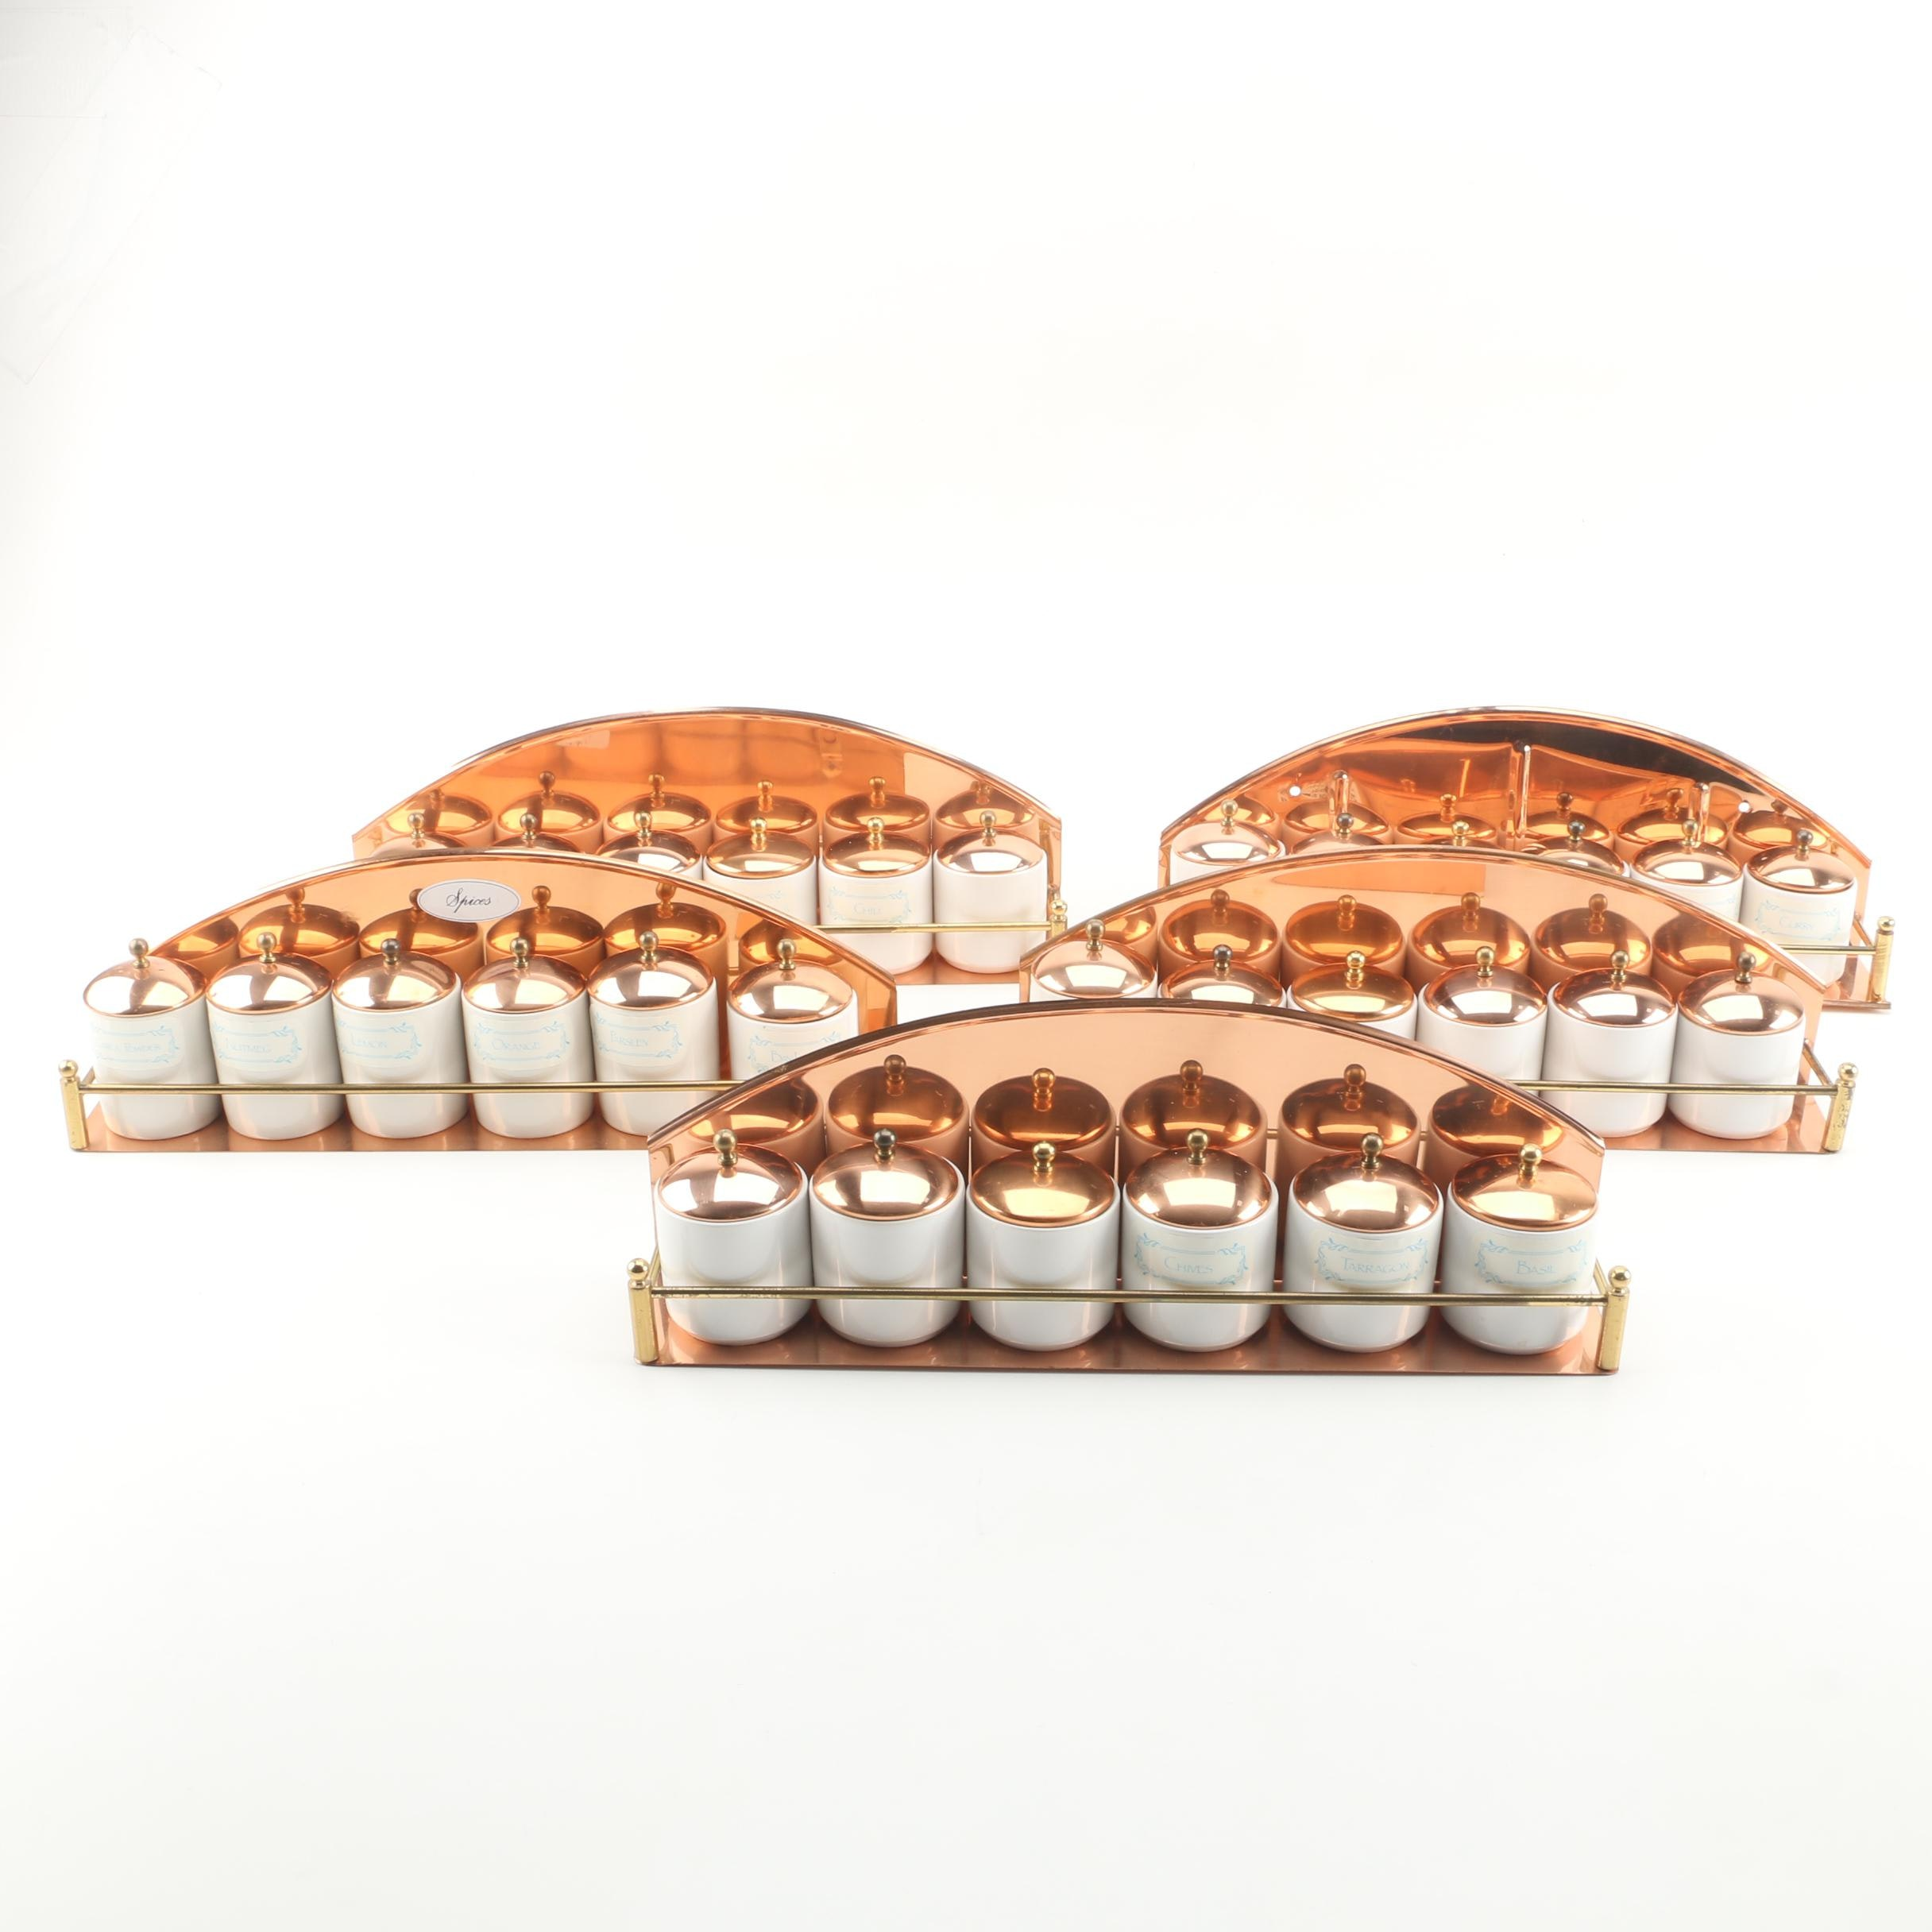 Vintage Copper Spice Racks with Ceramic Apothecary Style Spice Jars